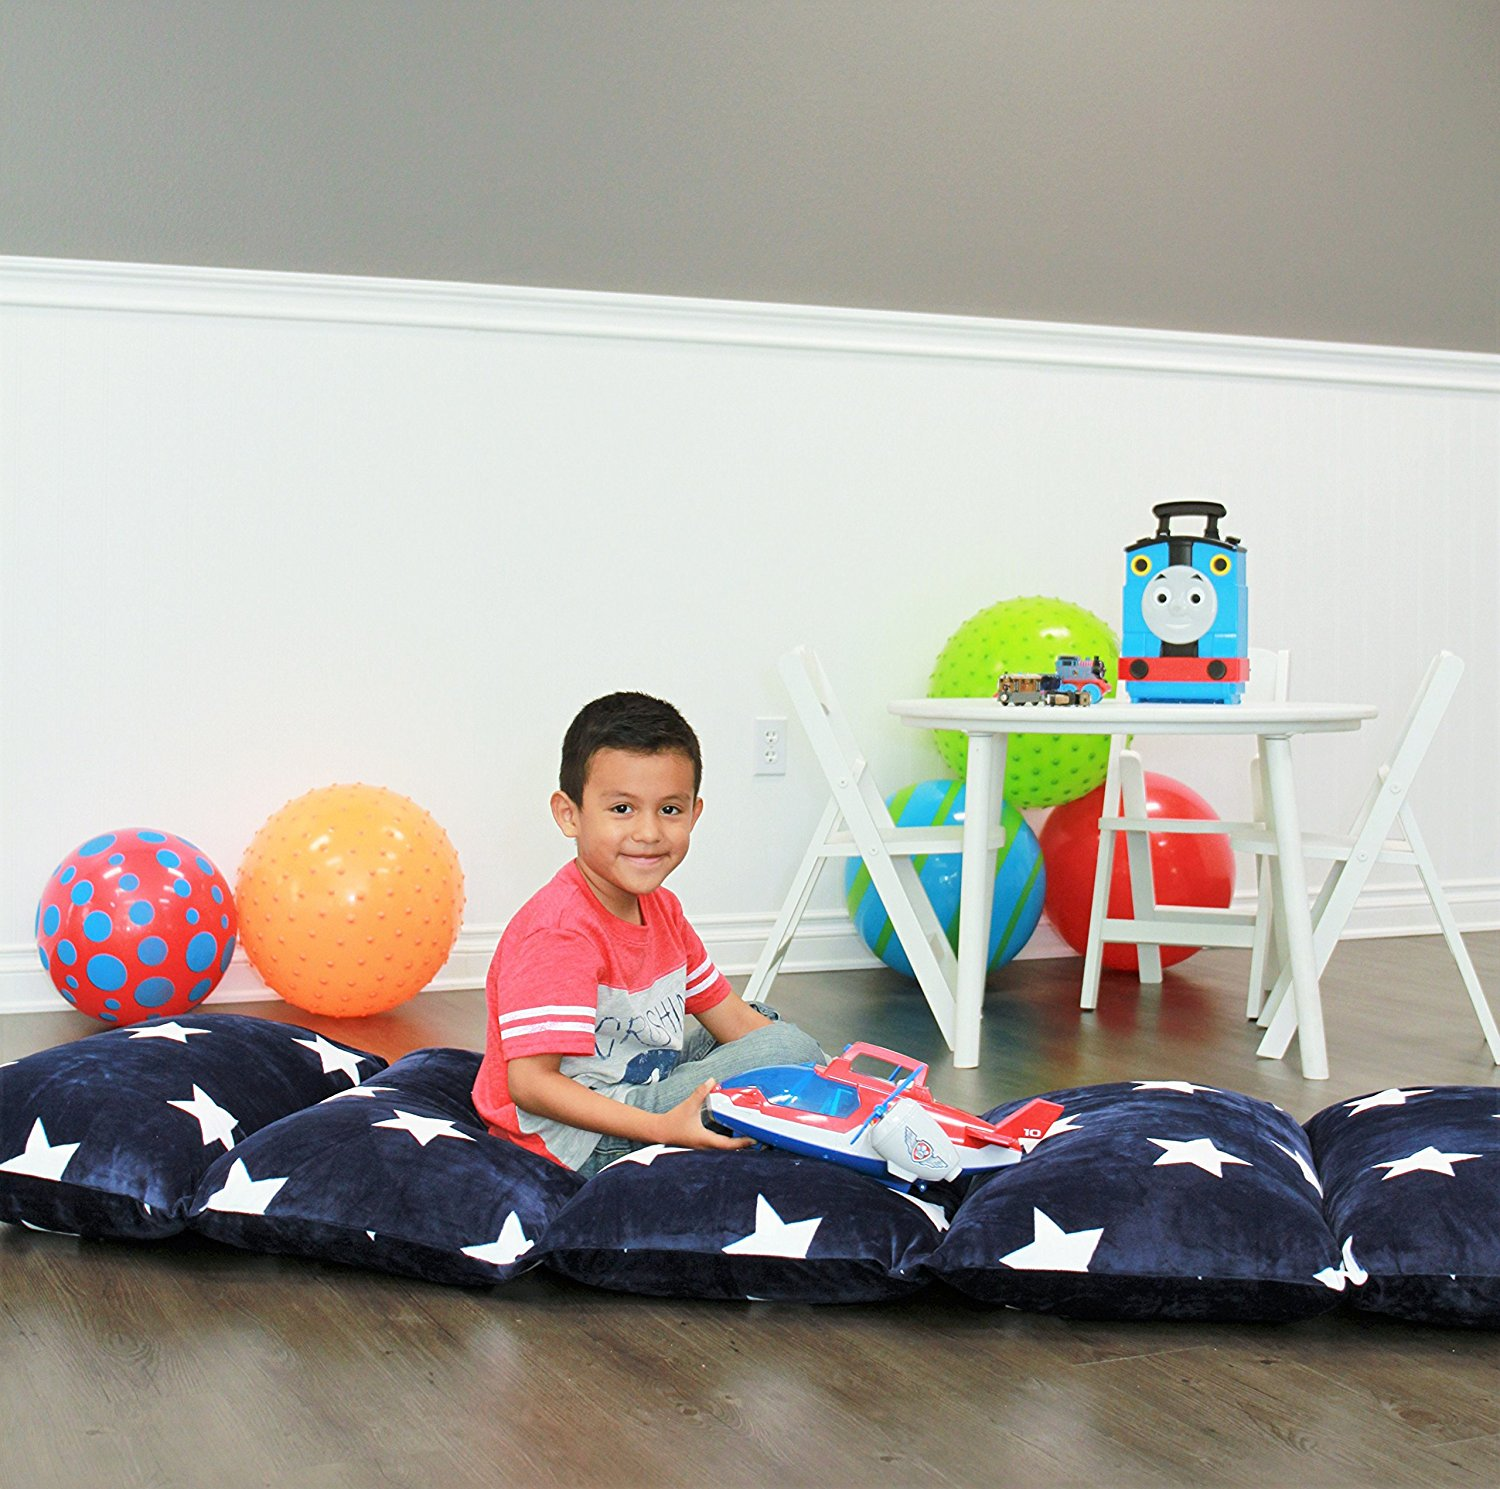 kid camping chair desk heavy duty kids floor pillow fold out lounger fabric cover for bed and game rooms, reading, video games or ...